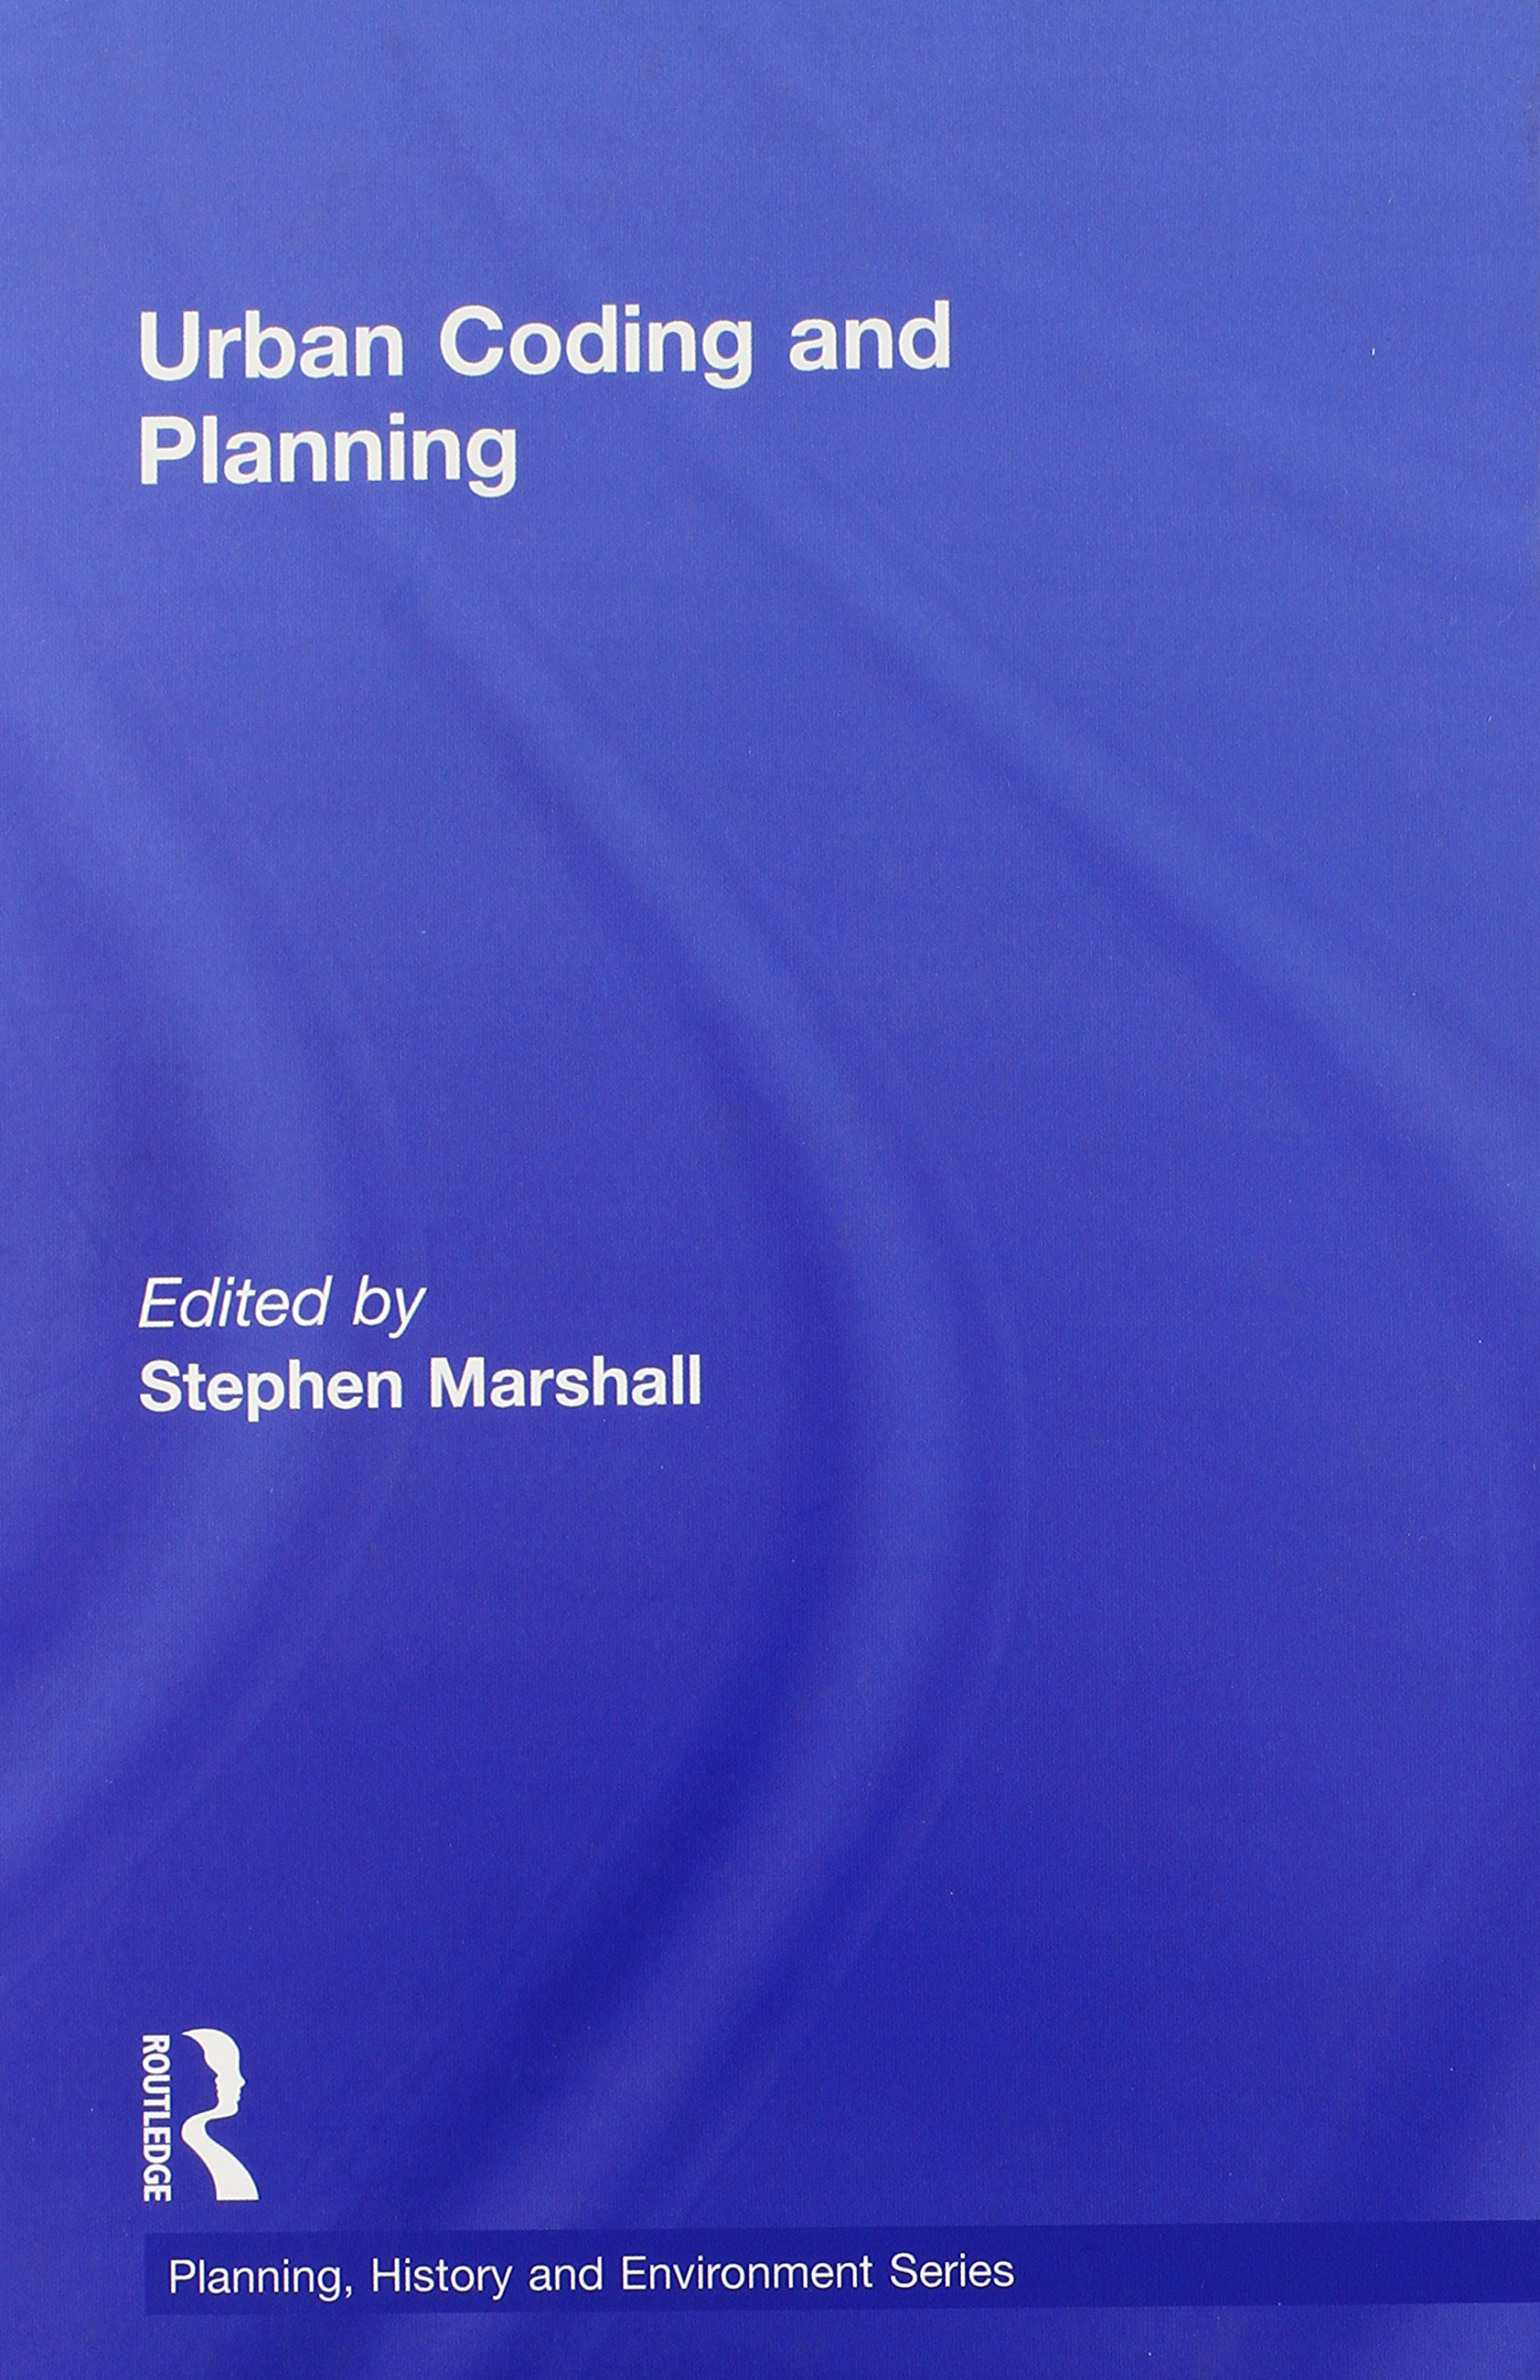 Buy Urban Coding and Planning (Planning, History and Environment Series)  Book Online at Low Prices in India | Urban Coding and Planning (Planning,  ...